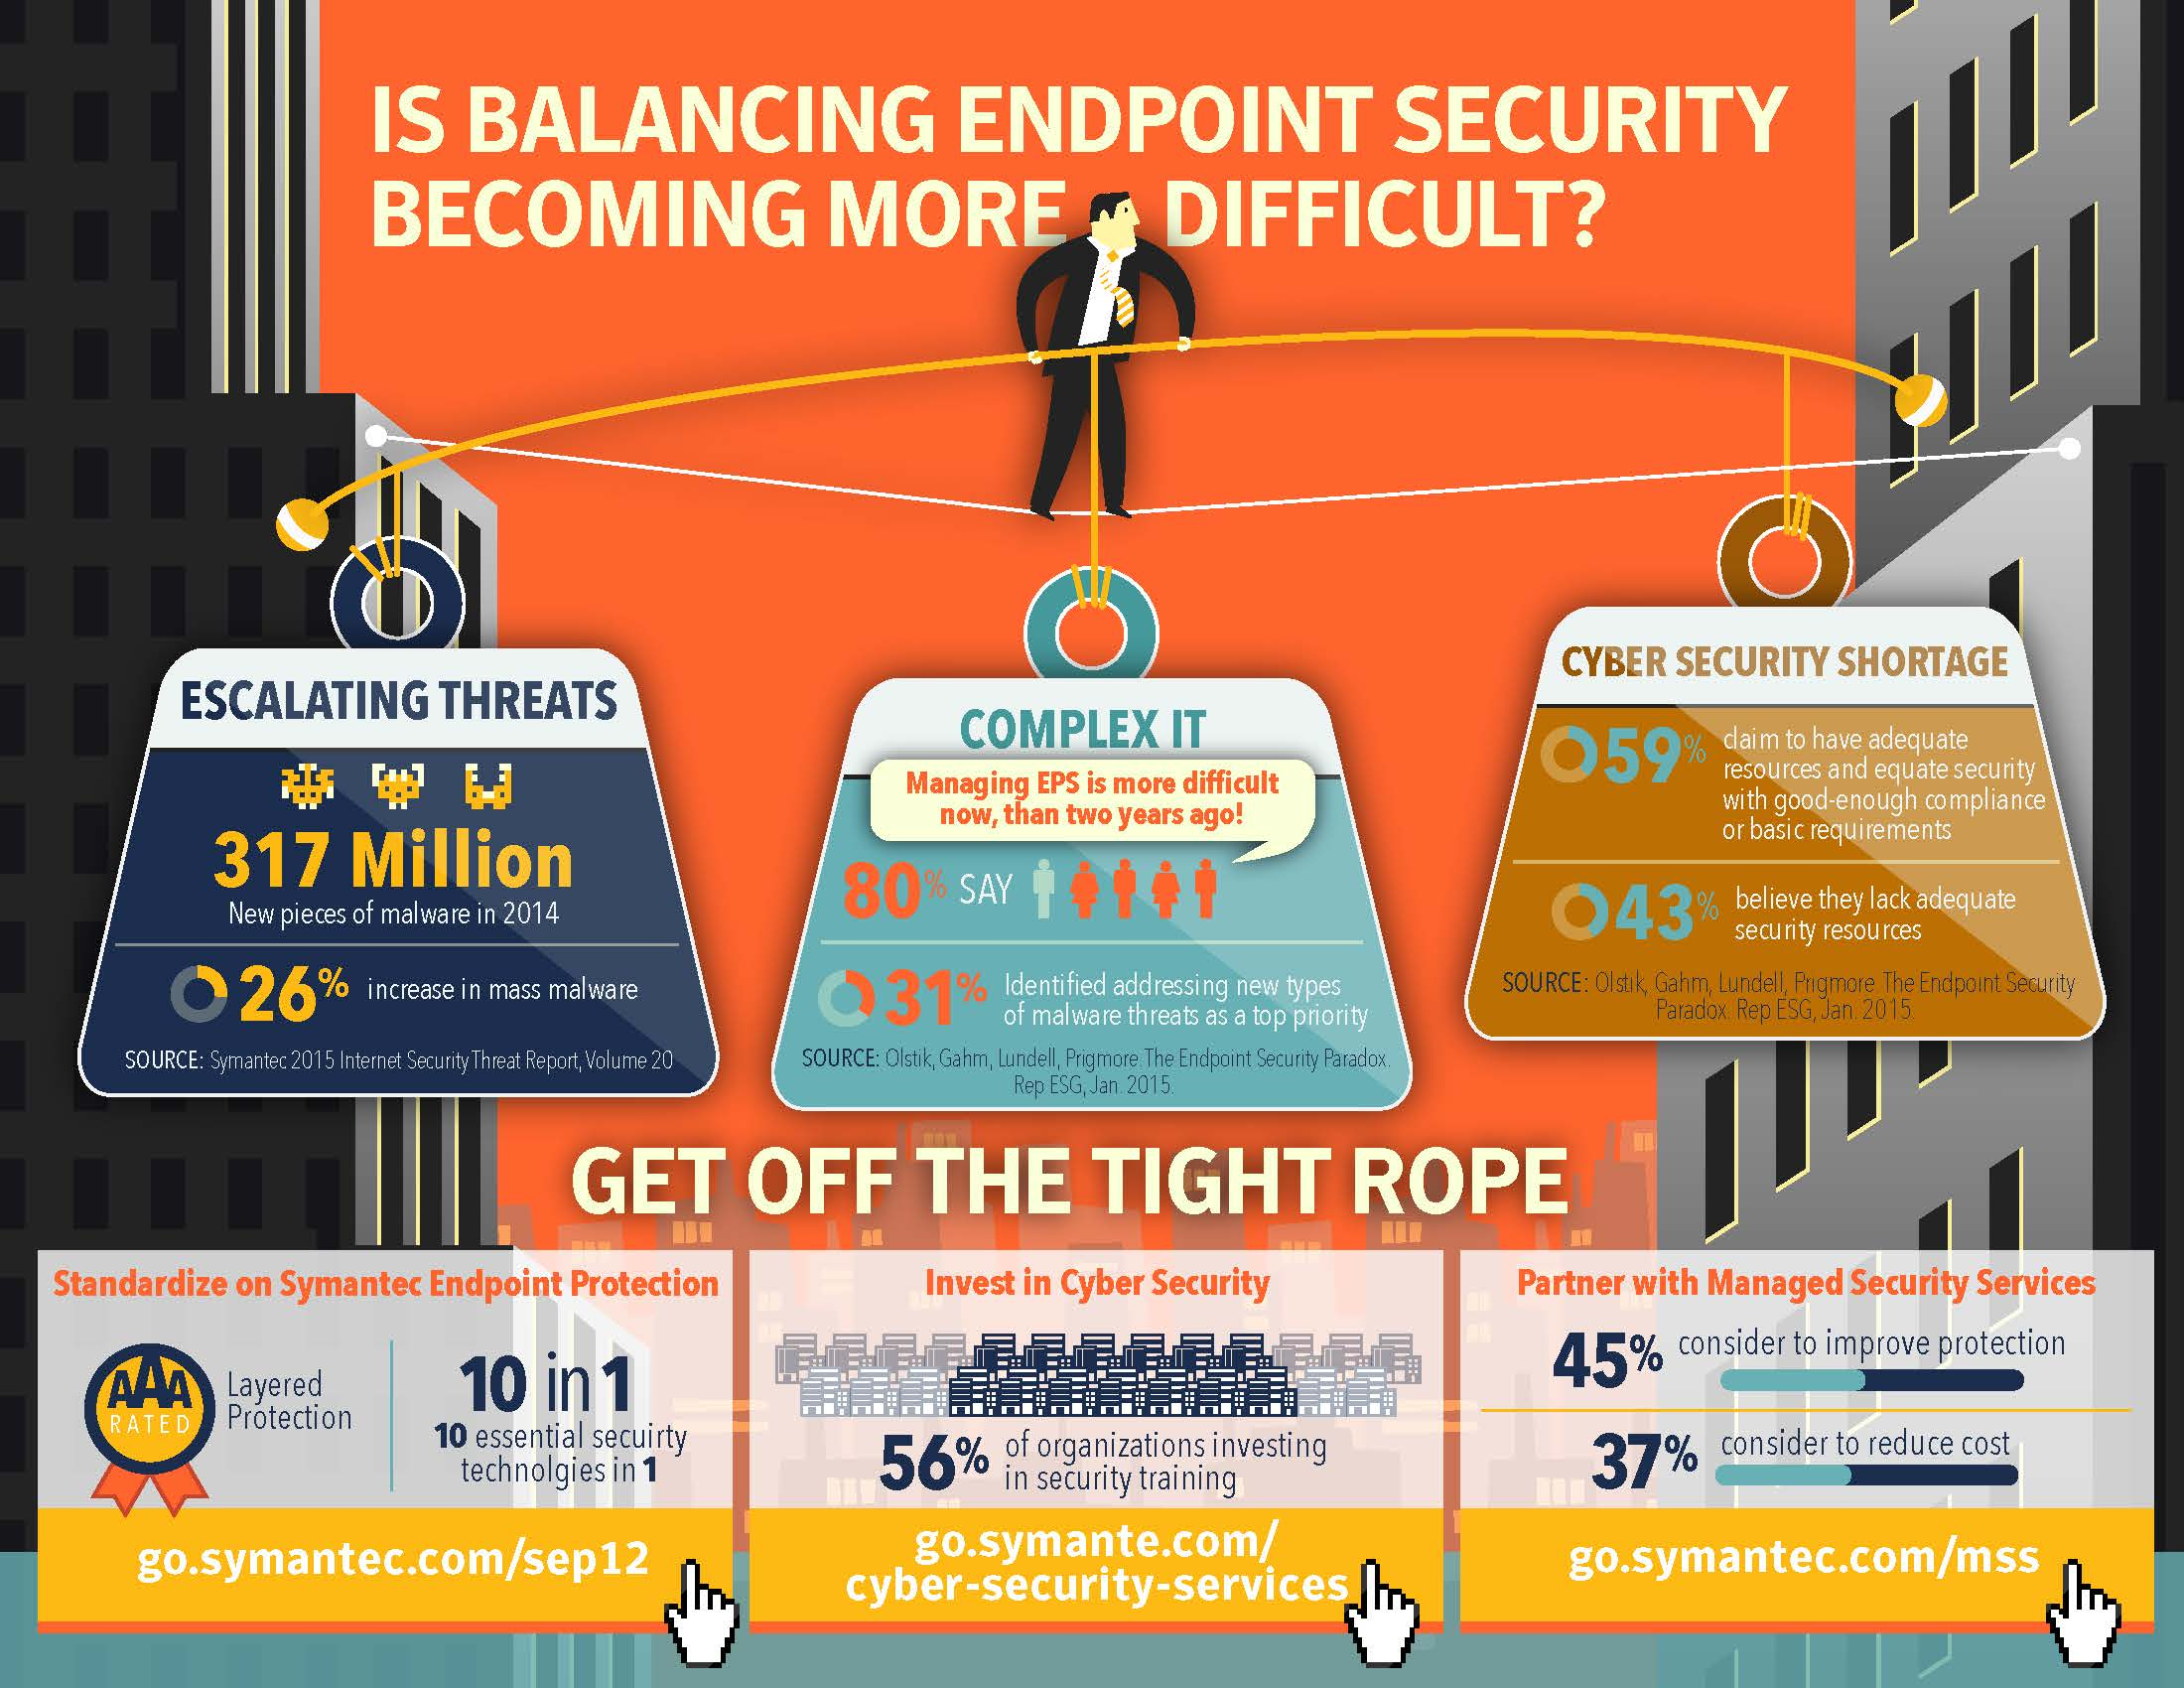 Is Balancing Endpoint Security Becoming More Difficult?